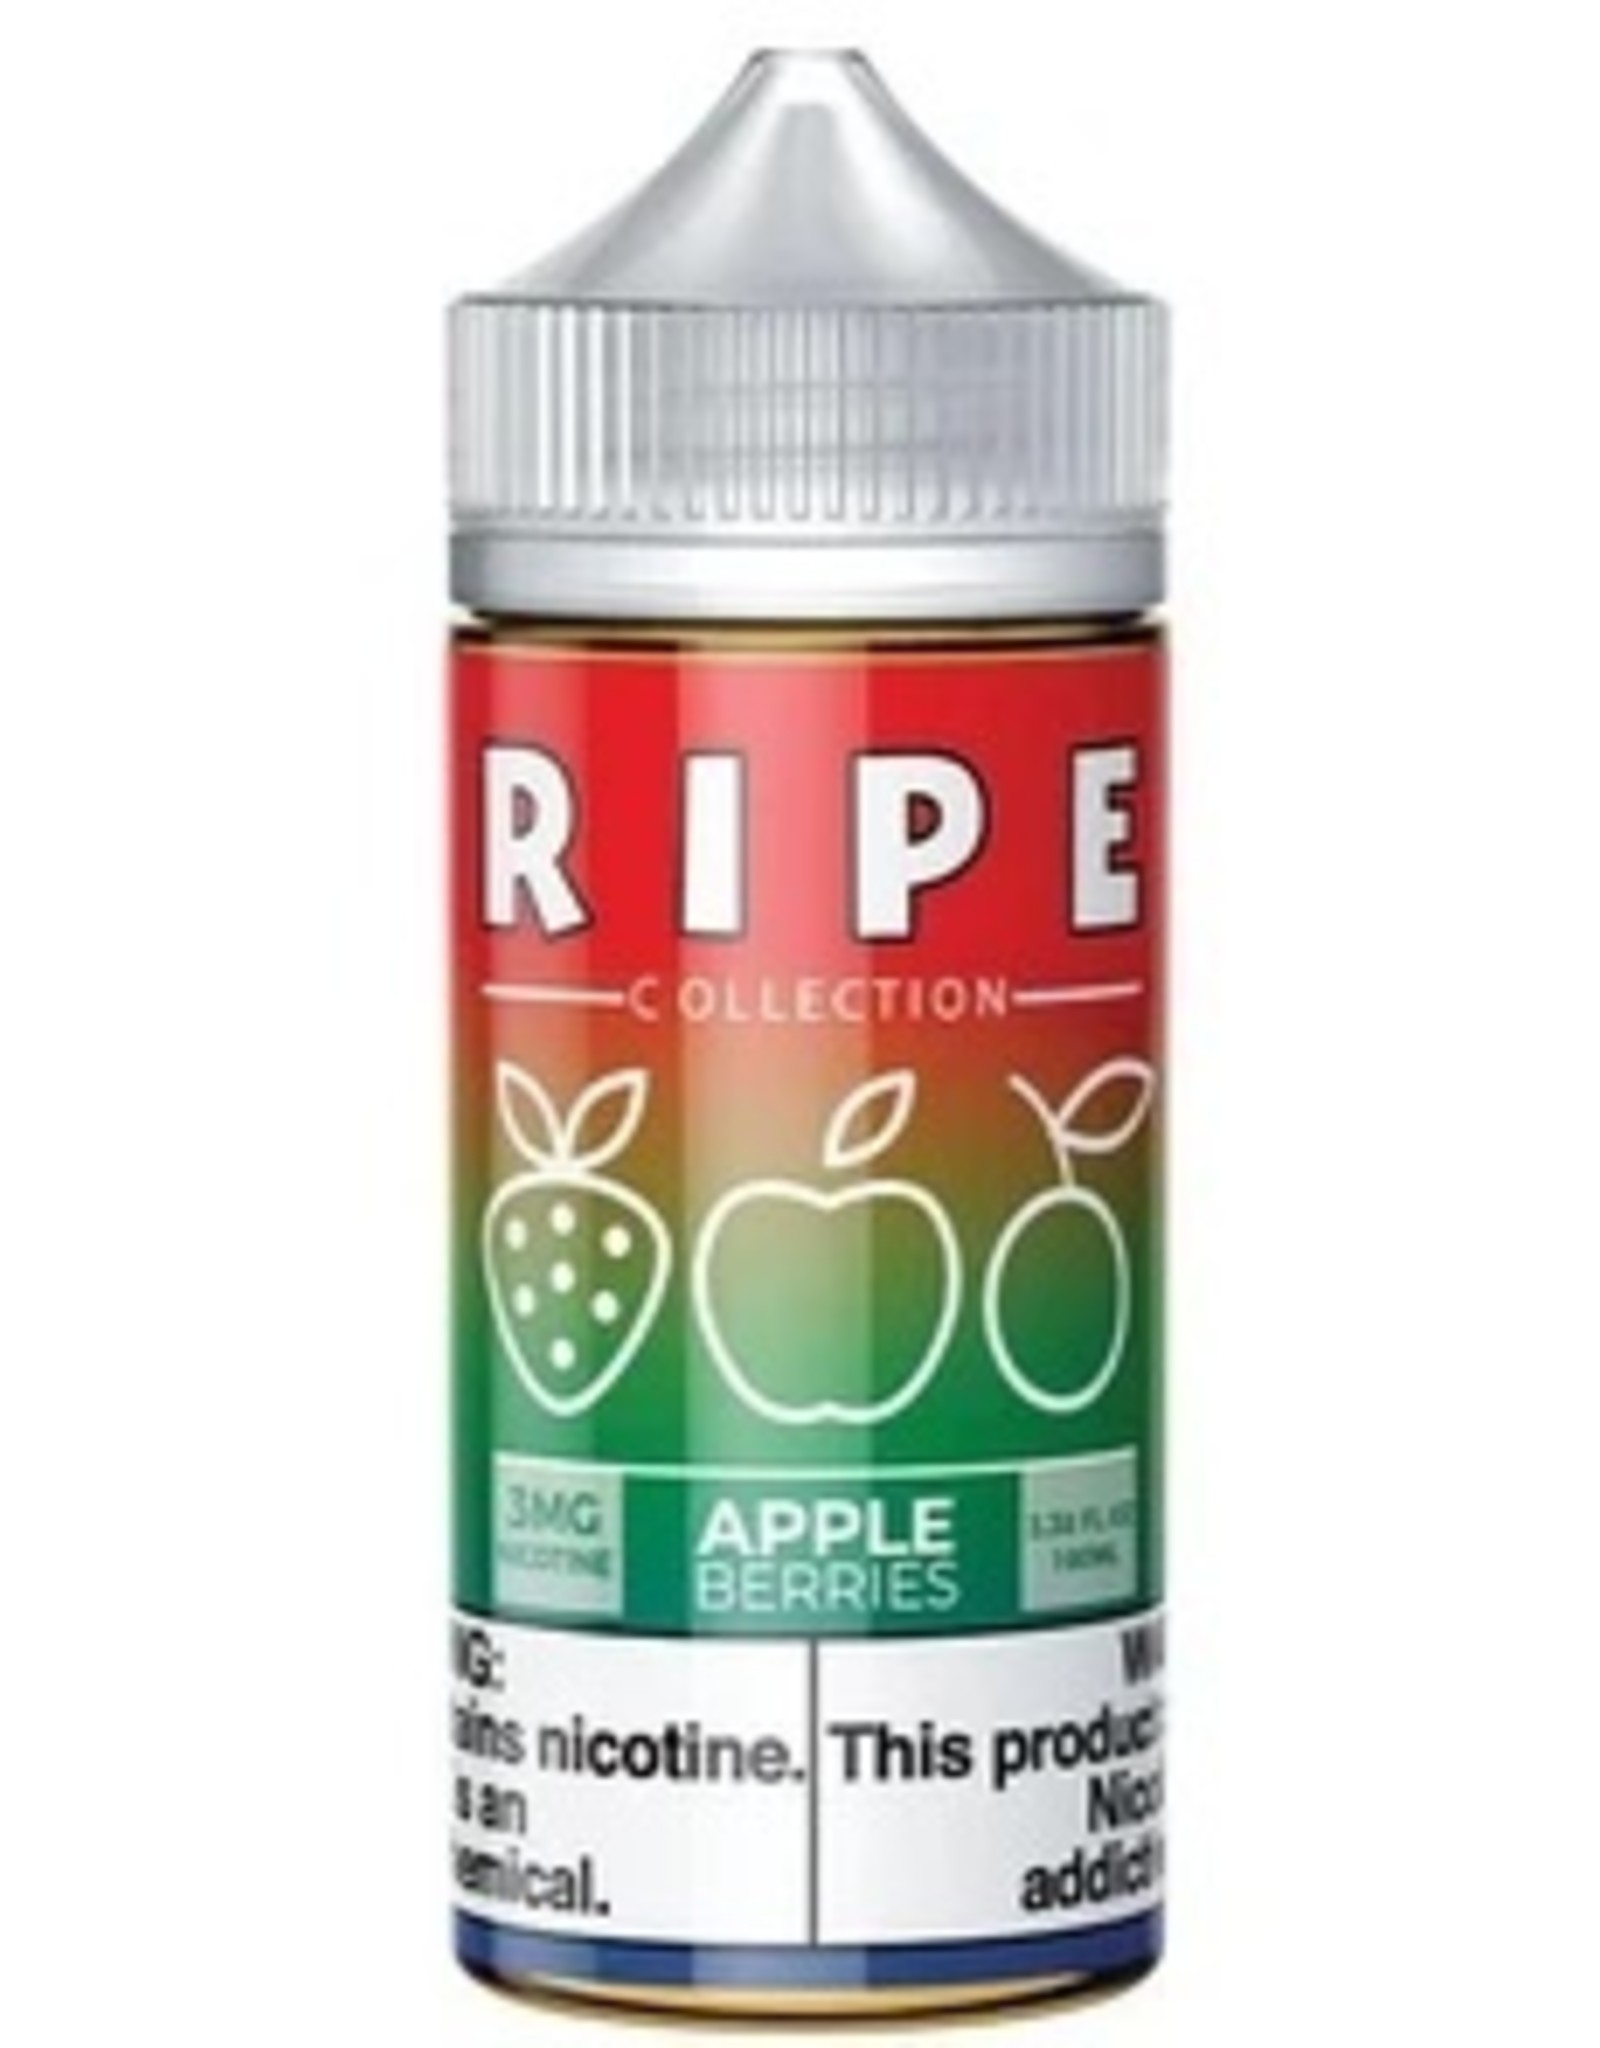 Ripe Collection Apple Berries By Ripe Collection